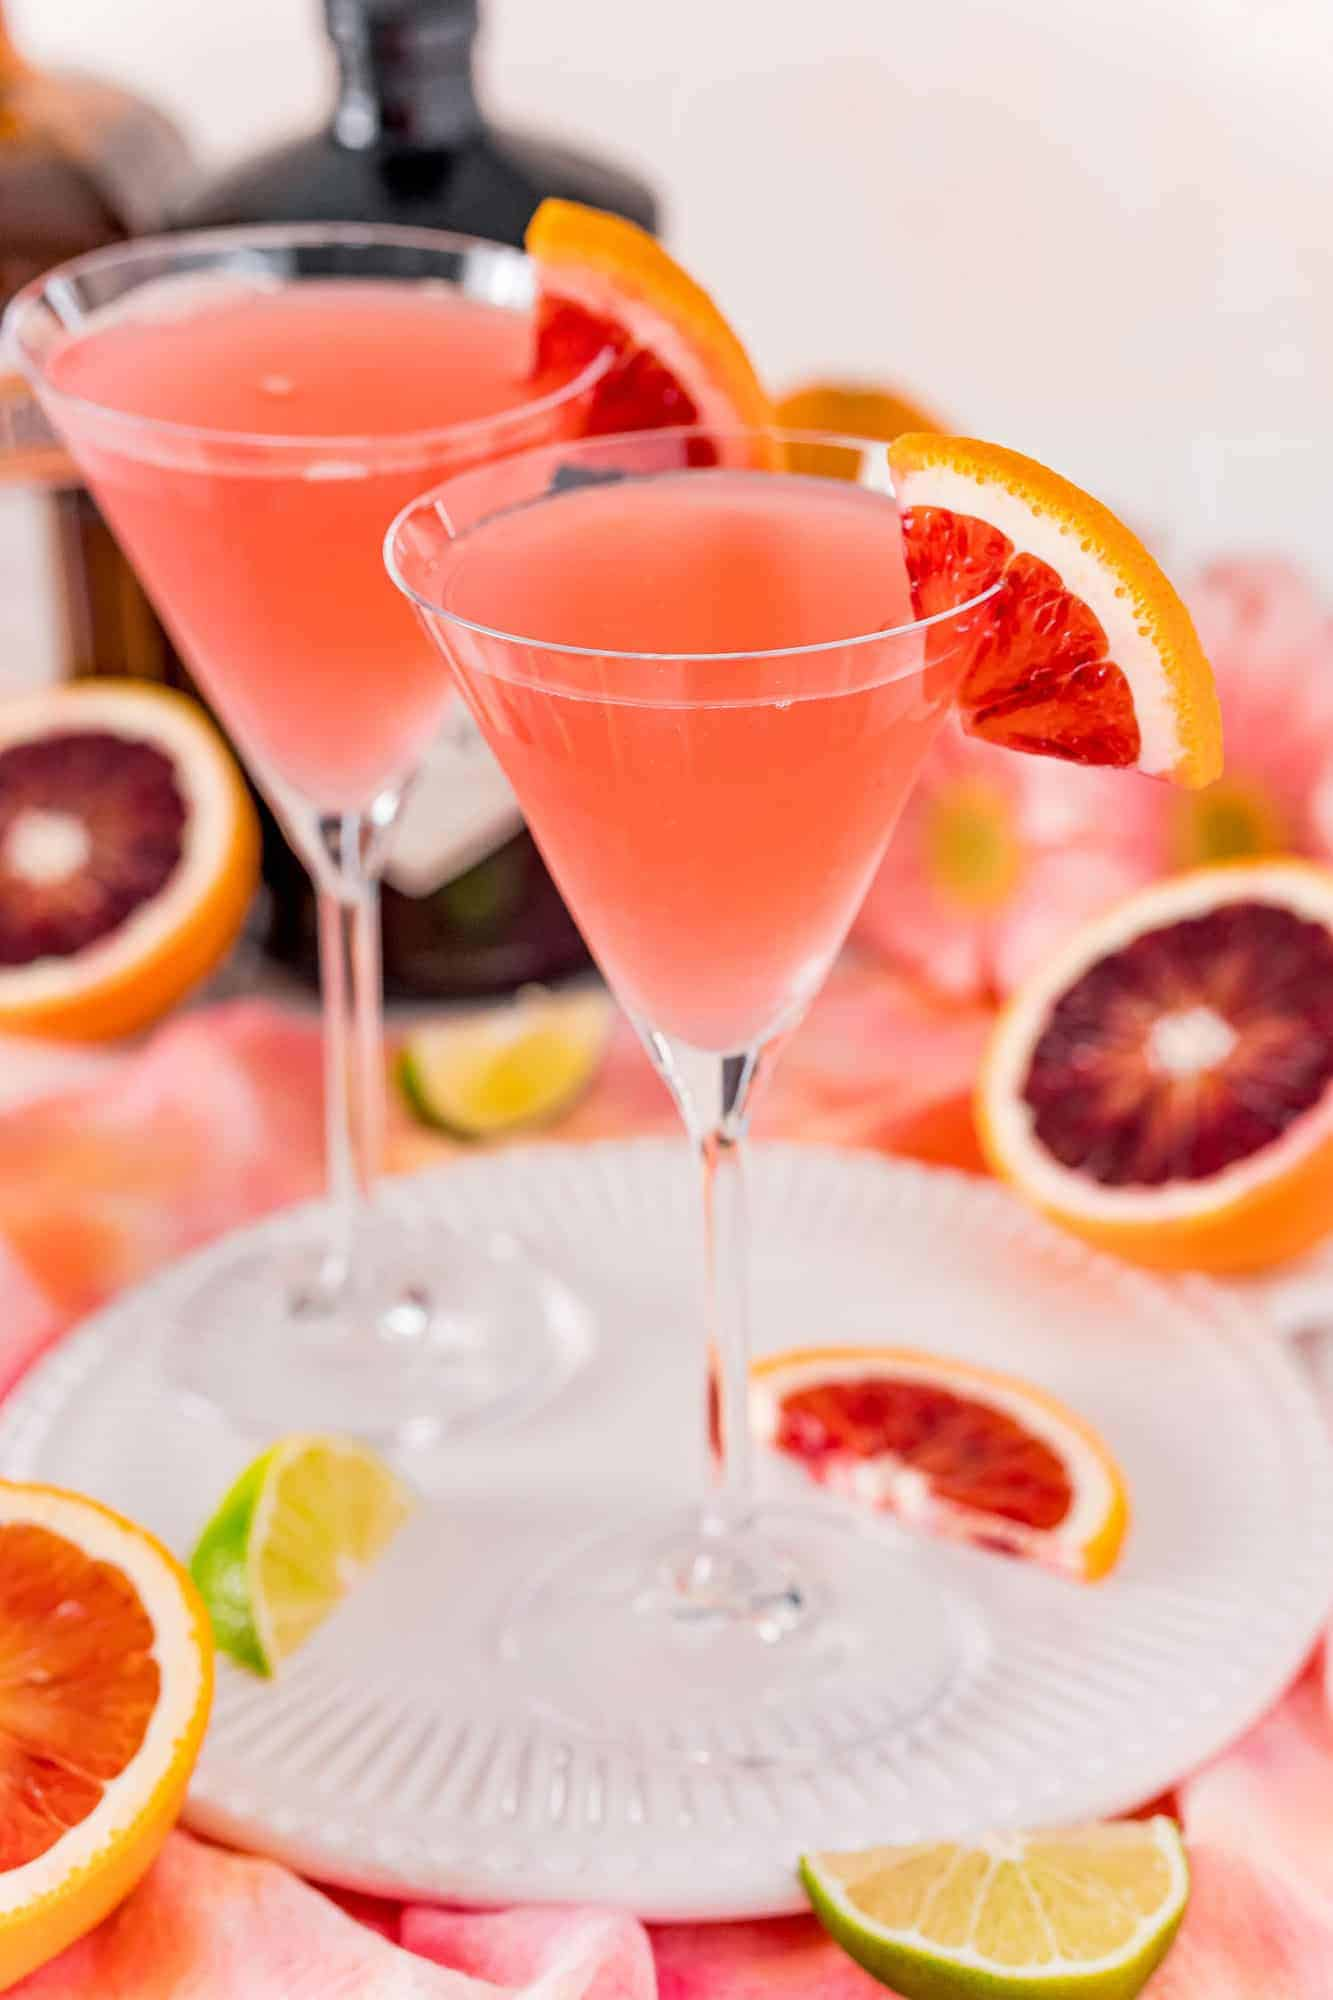 Two light red martinis on a white tray.